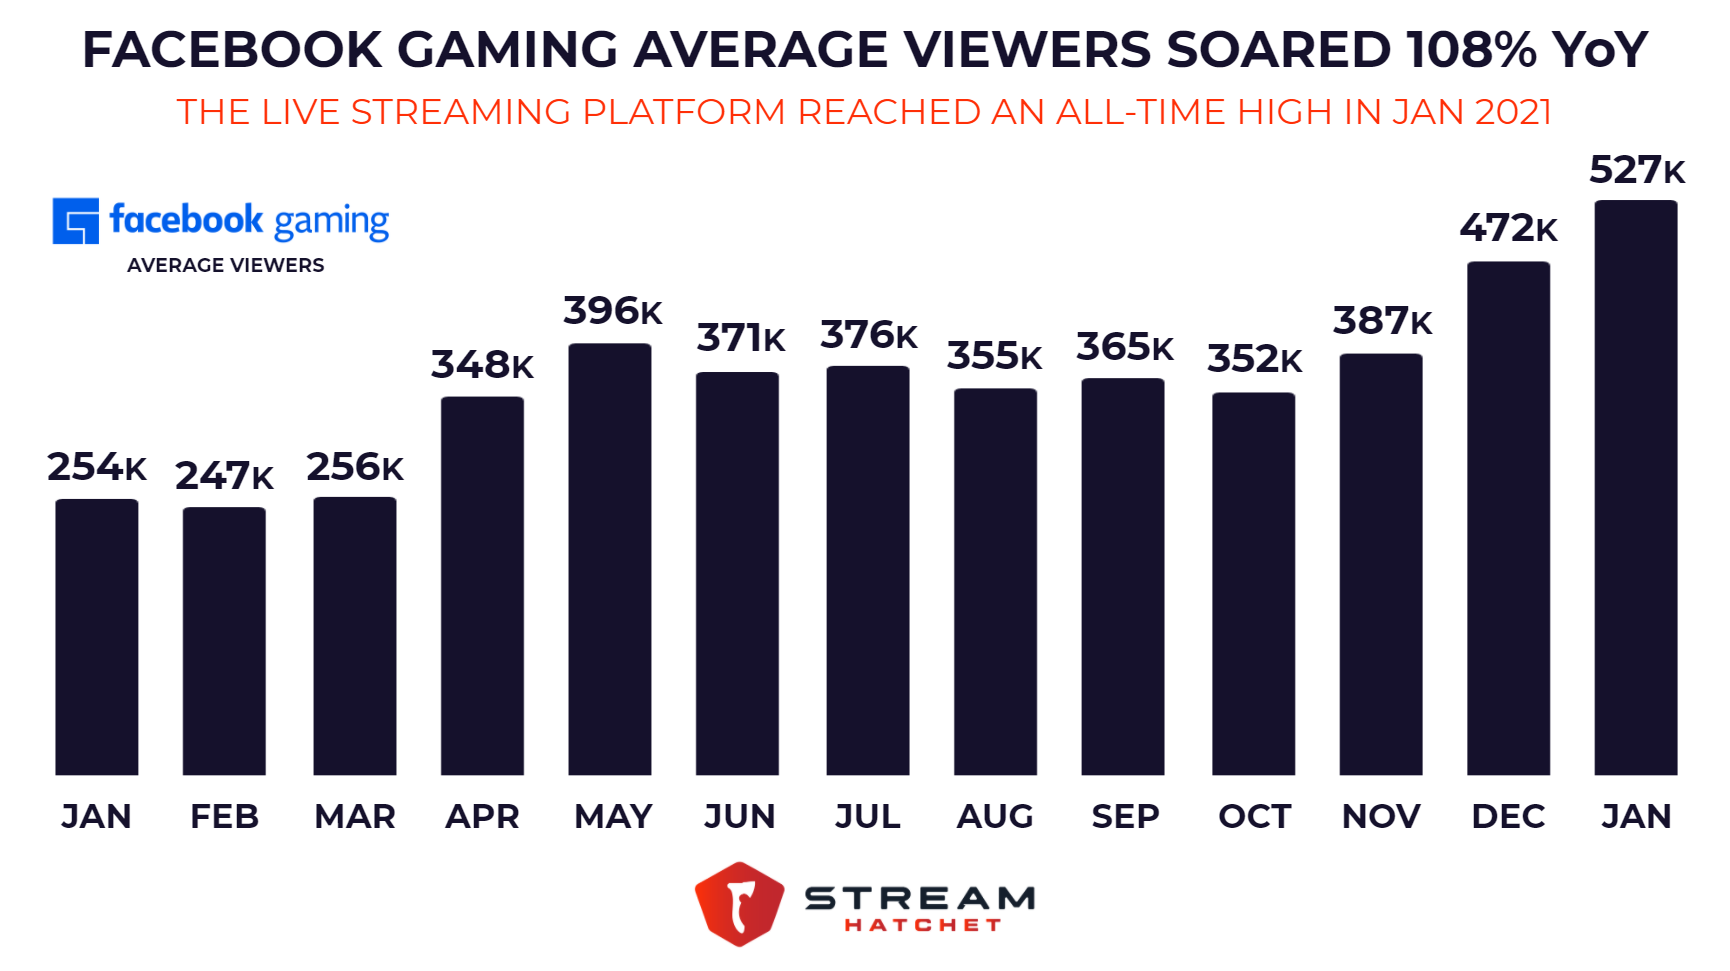 Facebook Gaming Average Viewers Jan 2020 - Jan 2021